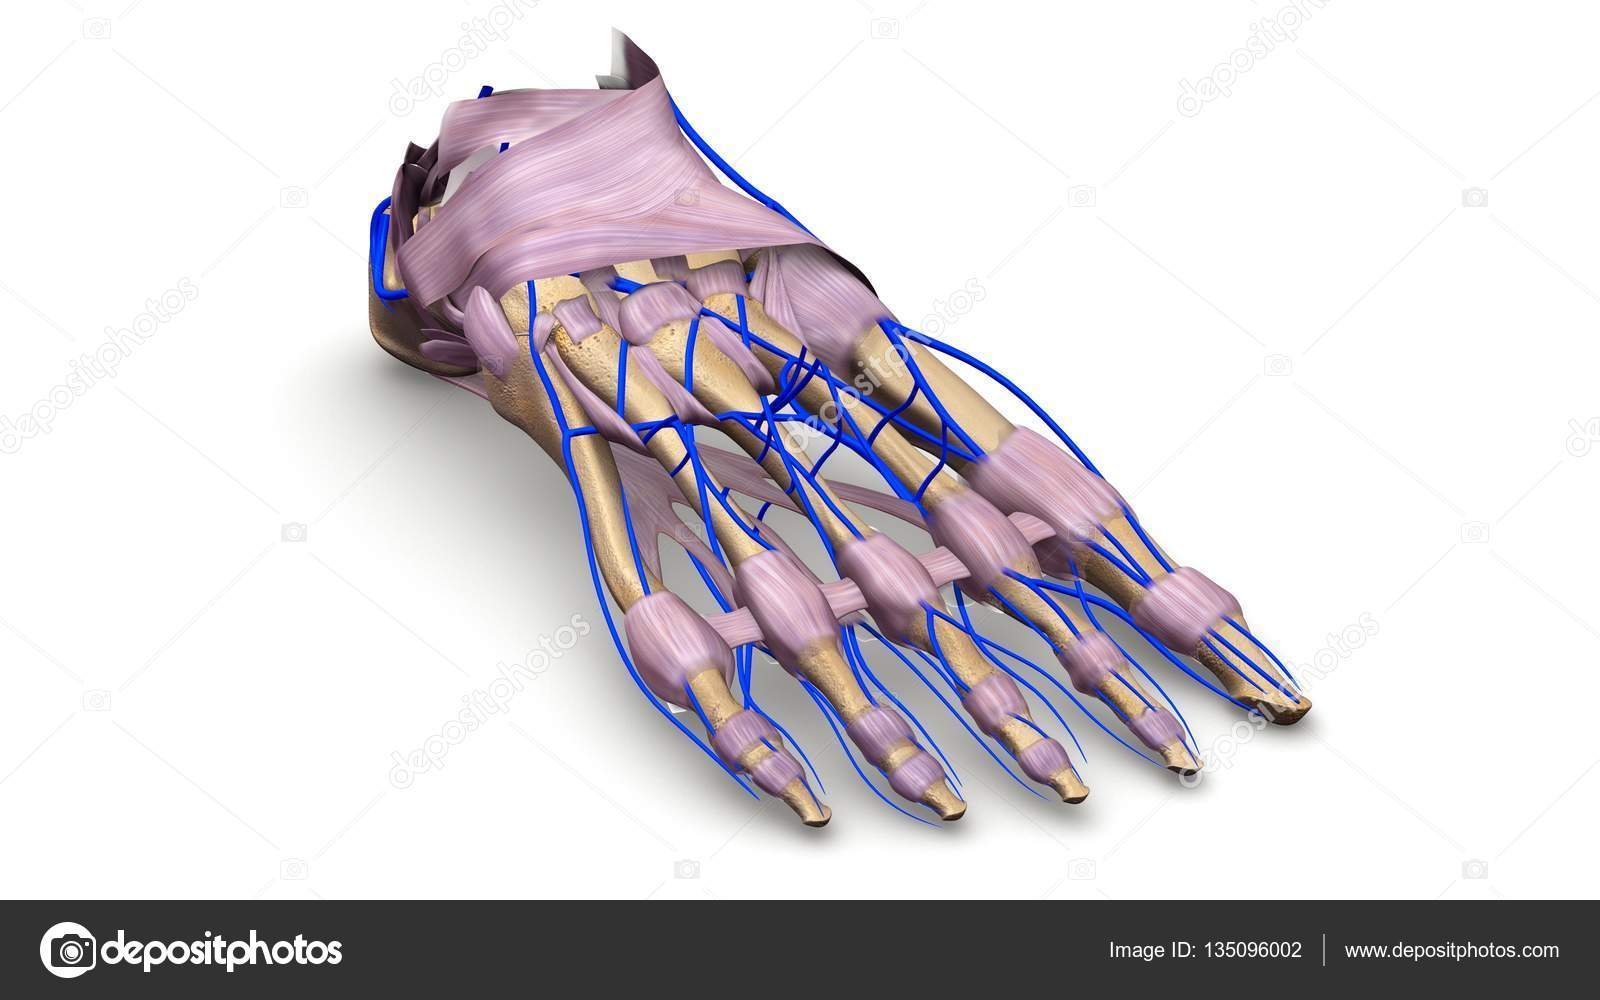 Fuss Knochen 3d illustration — Stockfoto © sciencepics #135096002